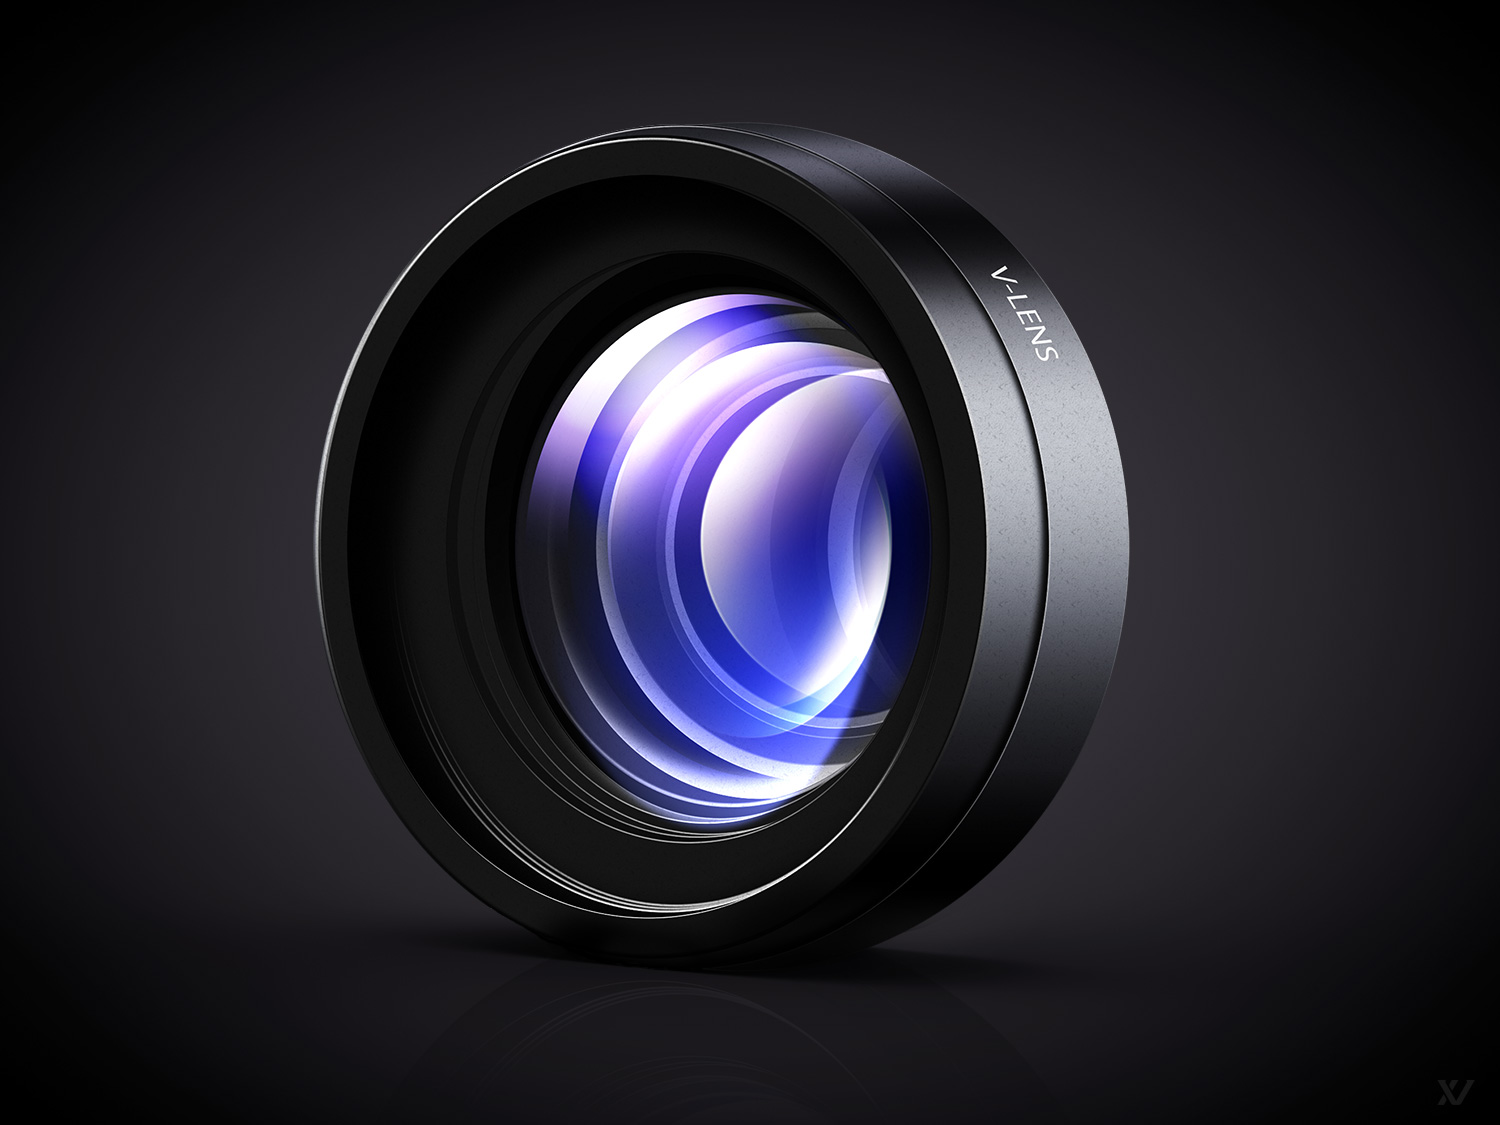 V-lens_lens_icon_by_vilen_(full_size)